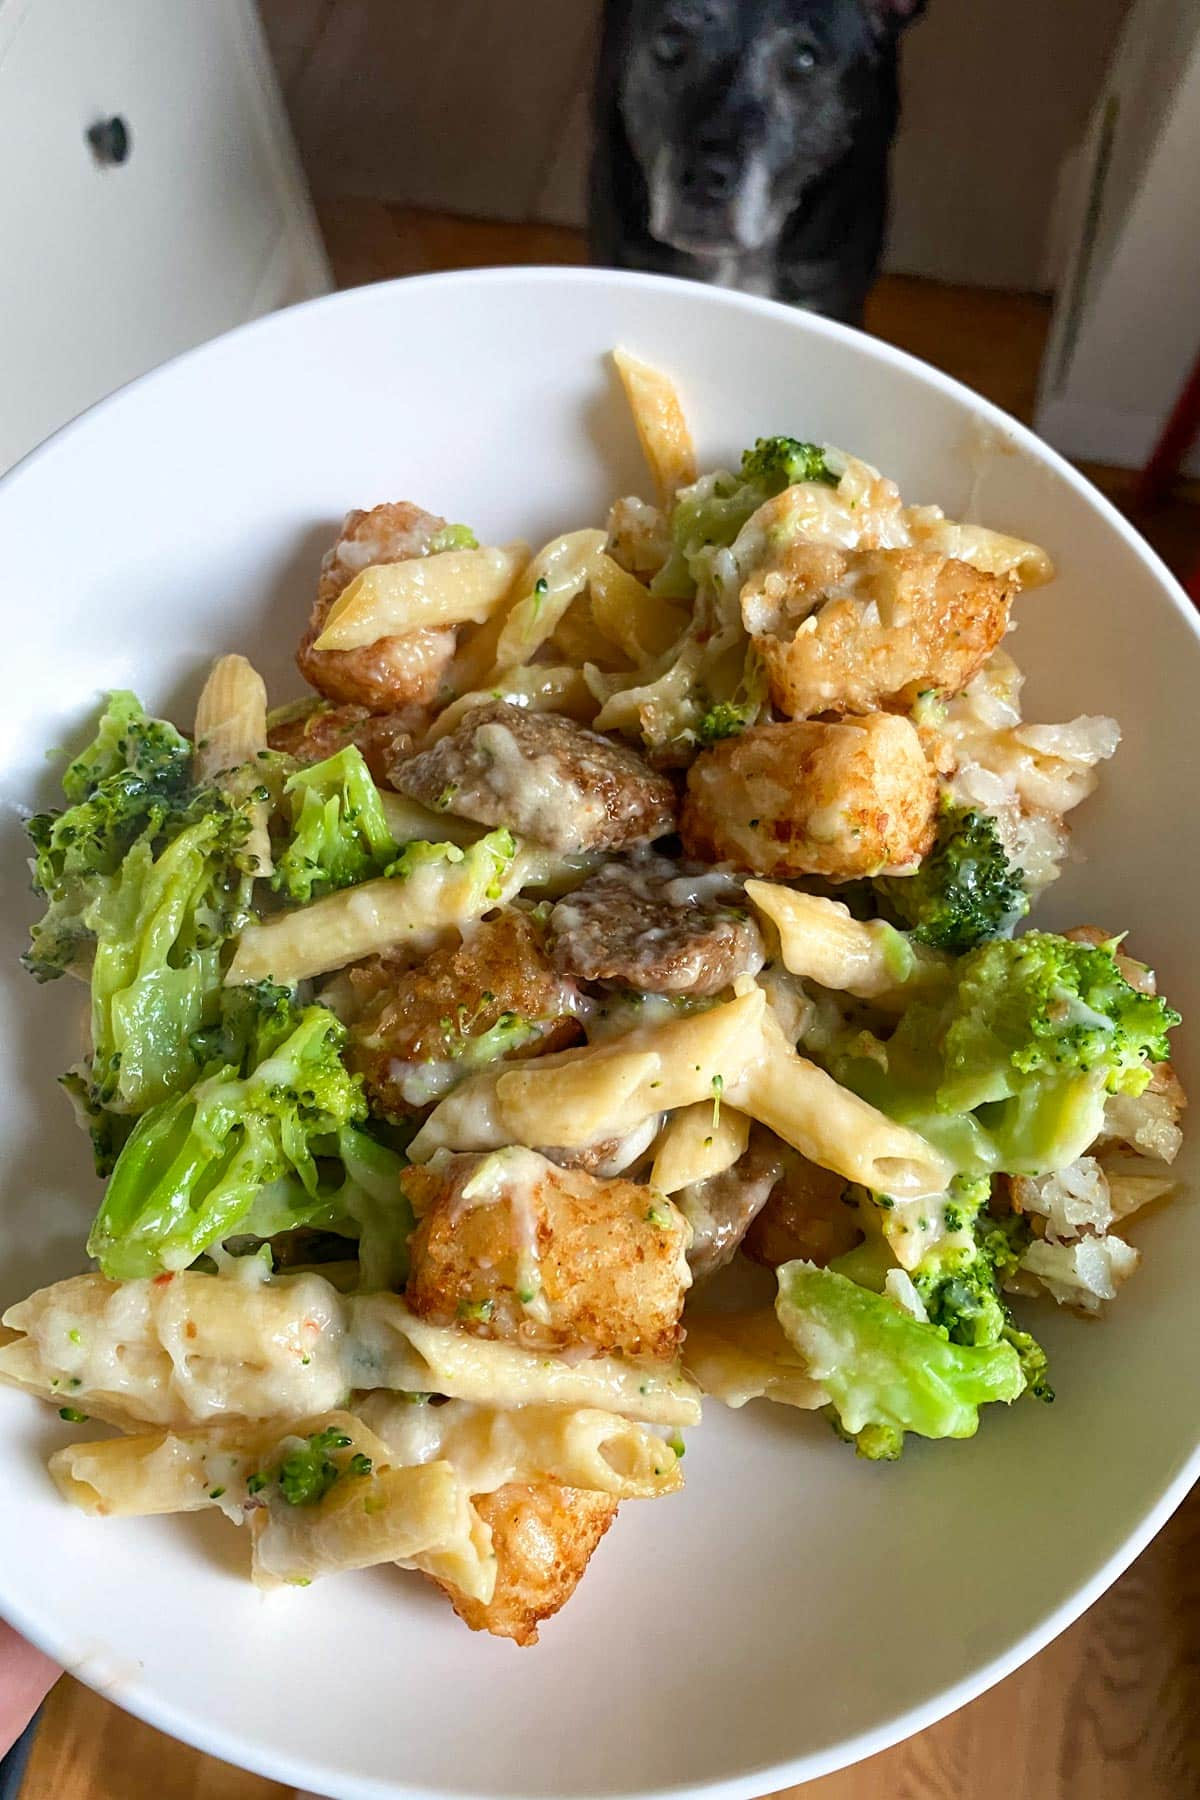 bowl of vegan mac and cheese with broccoli, Beyond Sausage, and tater tots